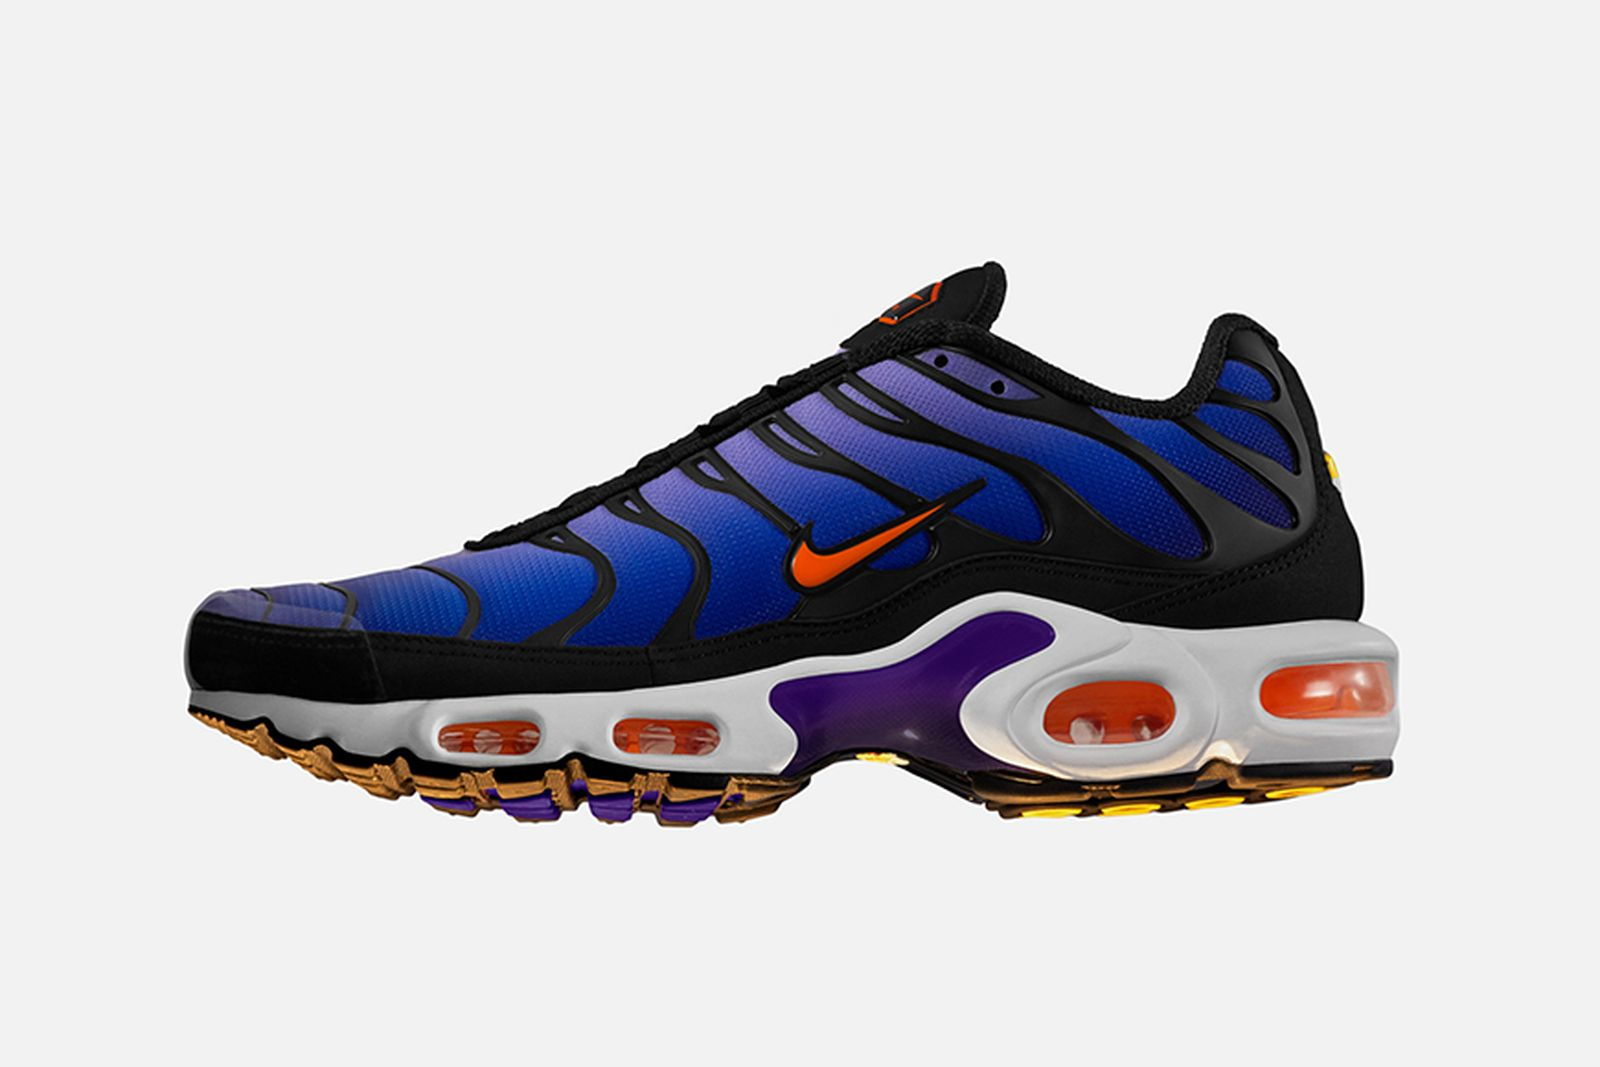 nike air max plus hyperblue sunset purple release date price